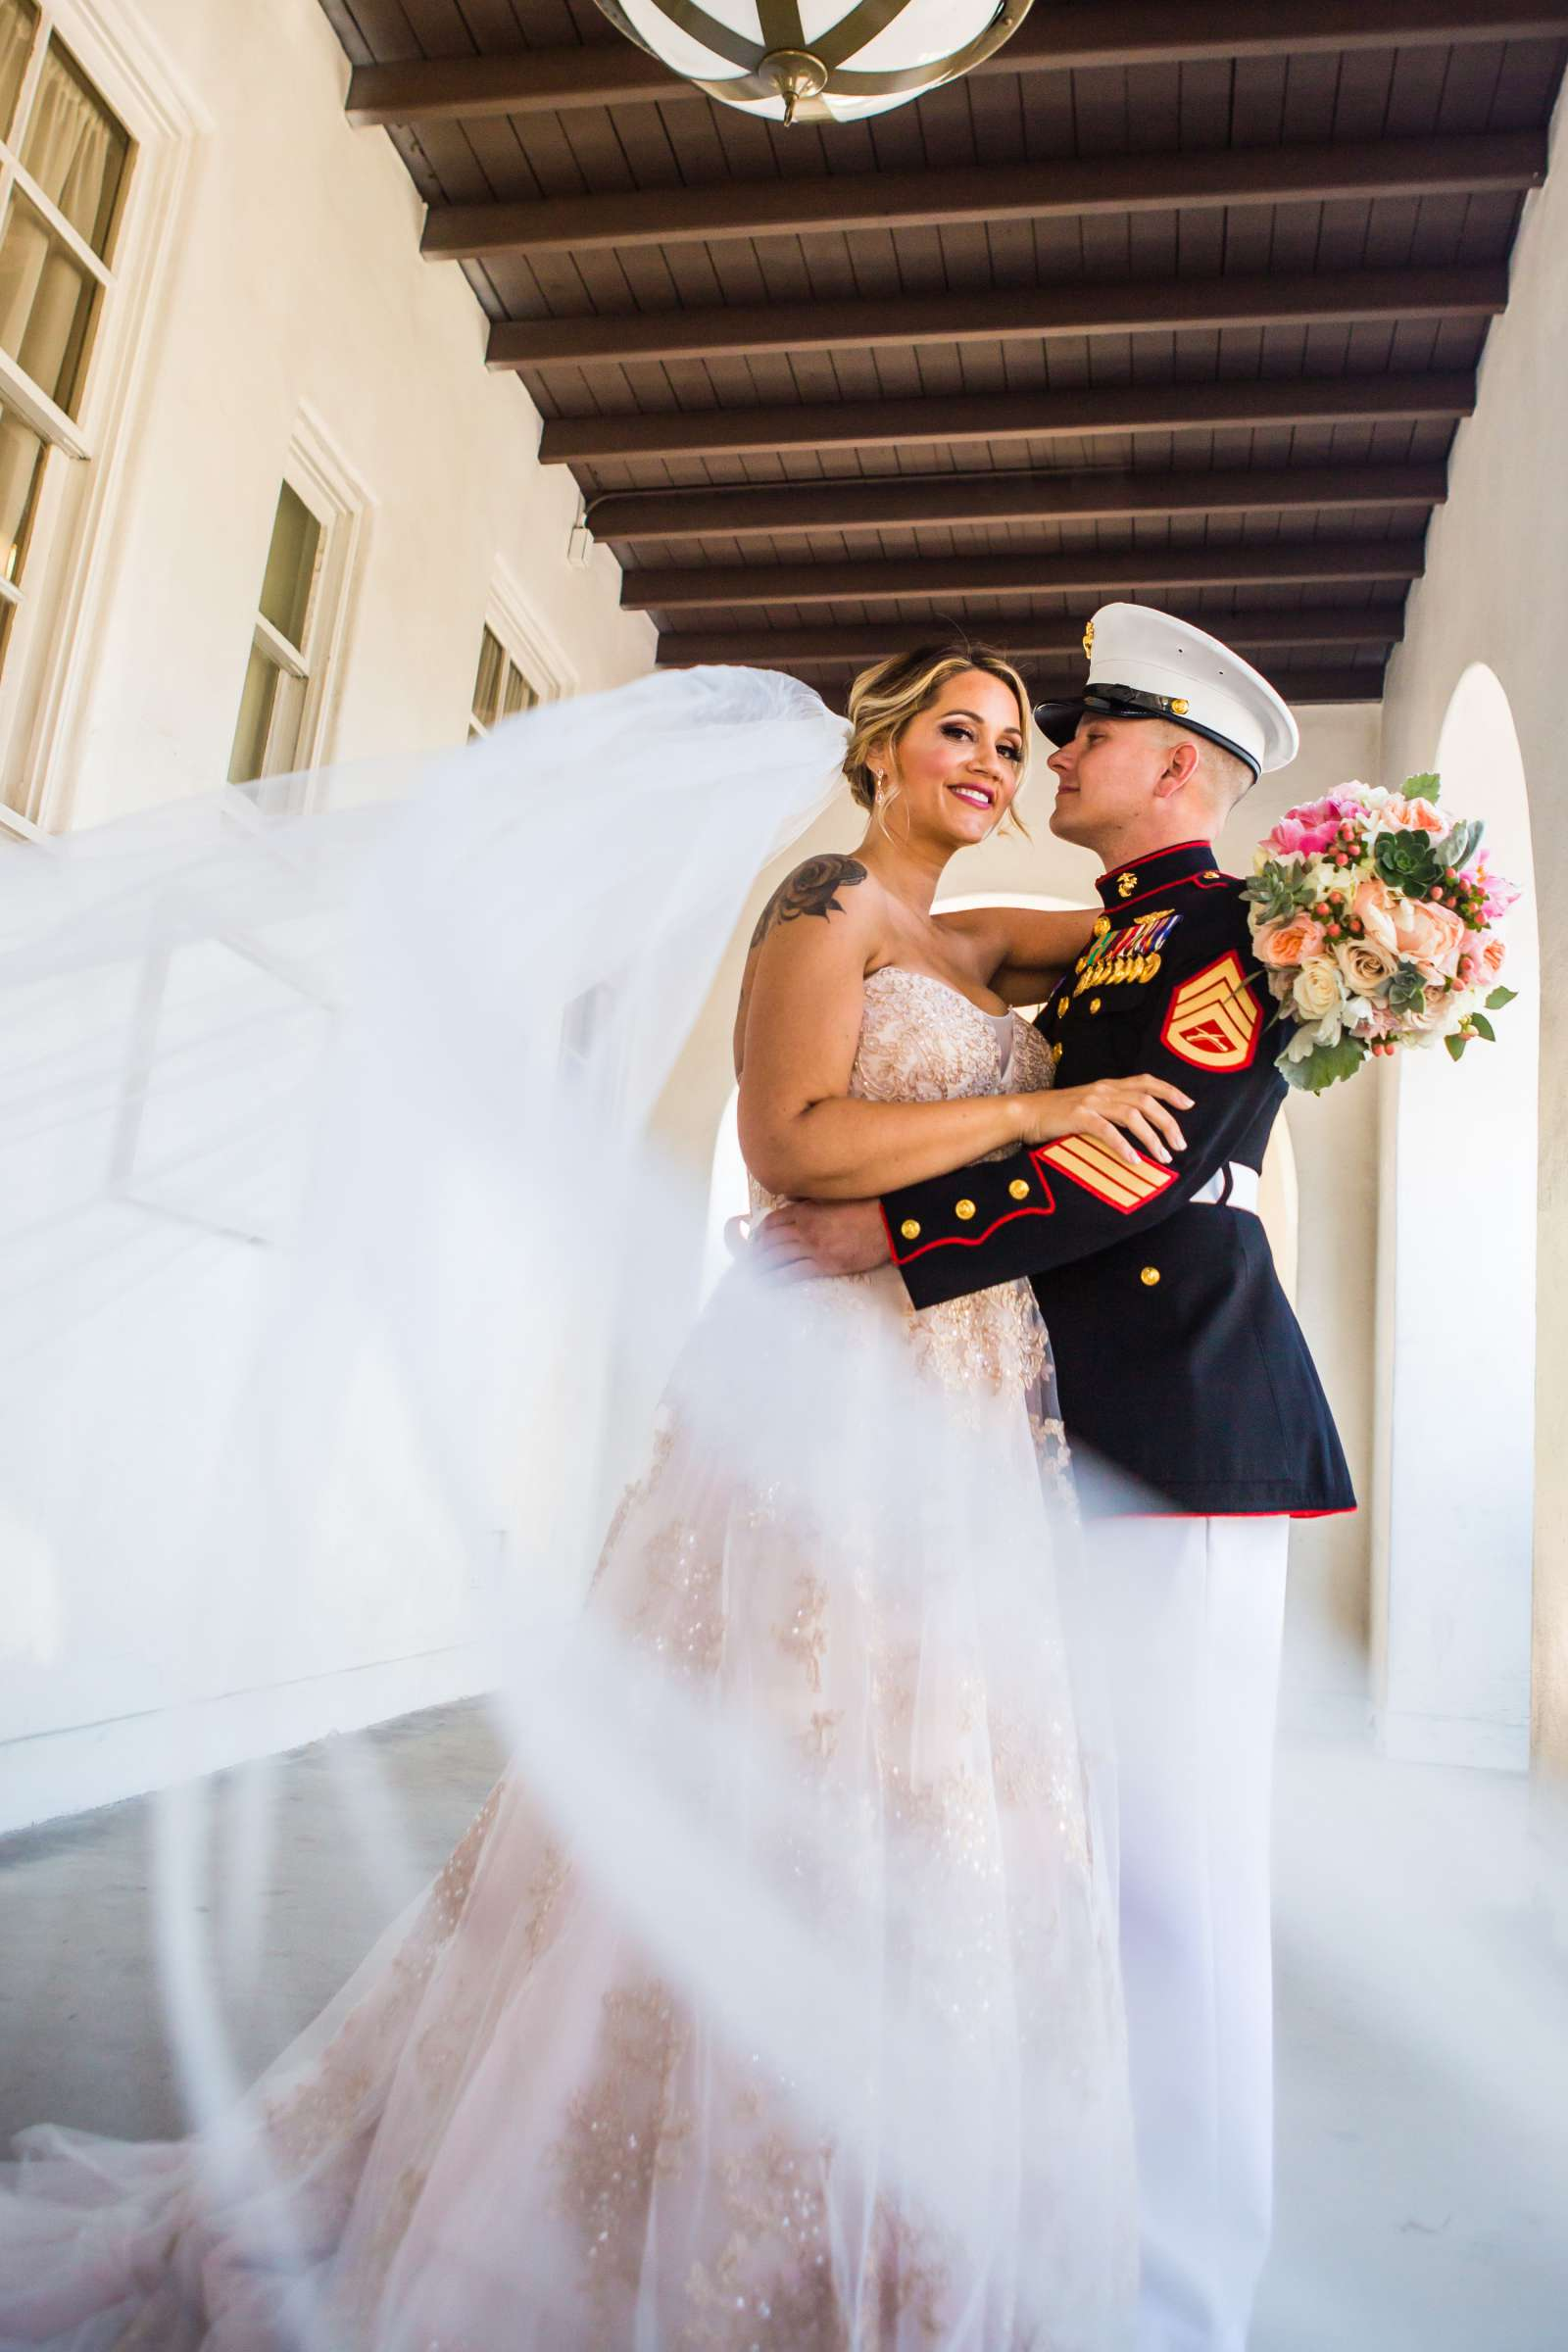 VENUES Liberty Station Wedding, Annalee and Tyler Wedding Photo #460684 by True Photography